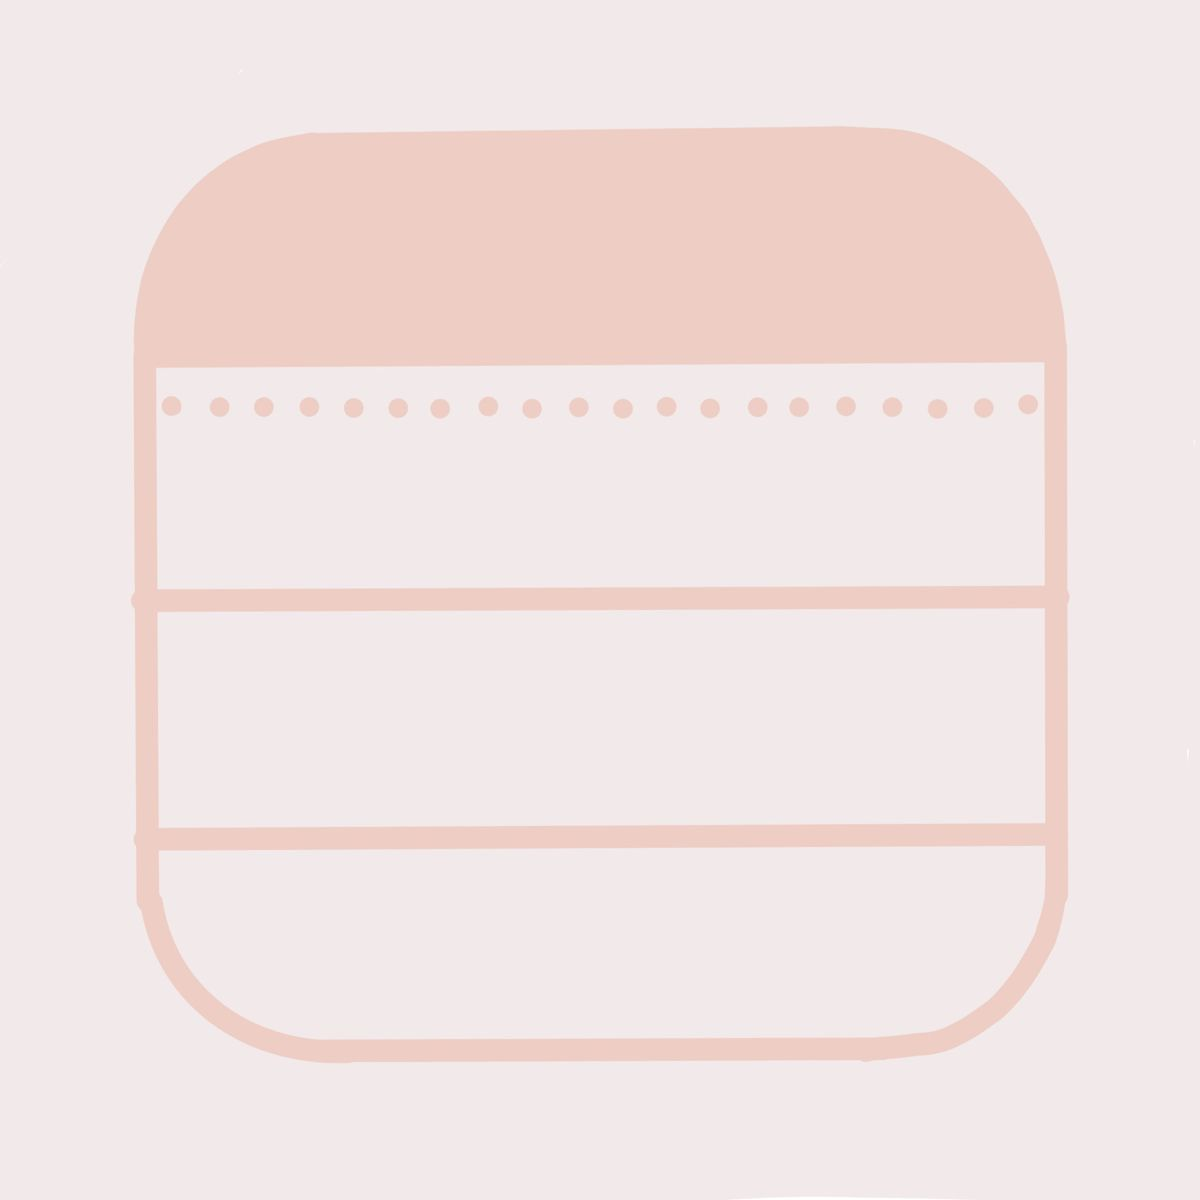 Notes Pink Aesthetic App Icon In 2020 App Icon Iphone Icon Iphone App Design